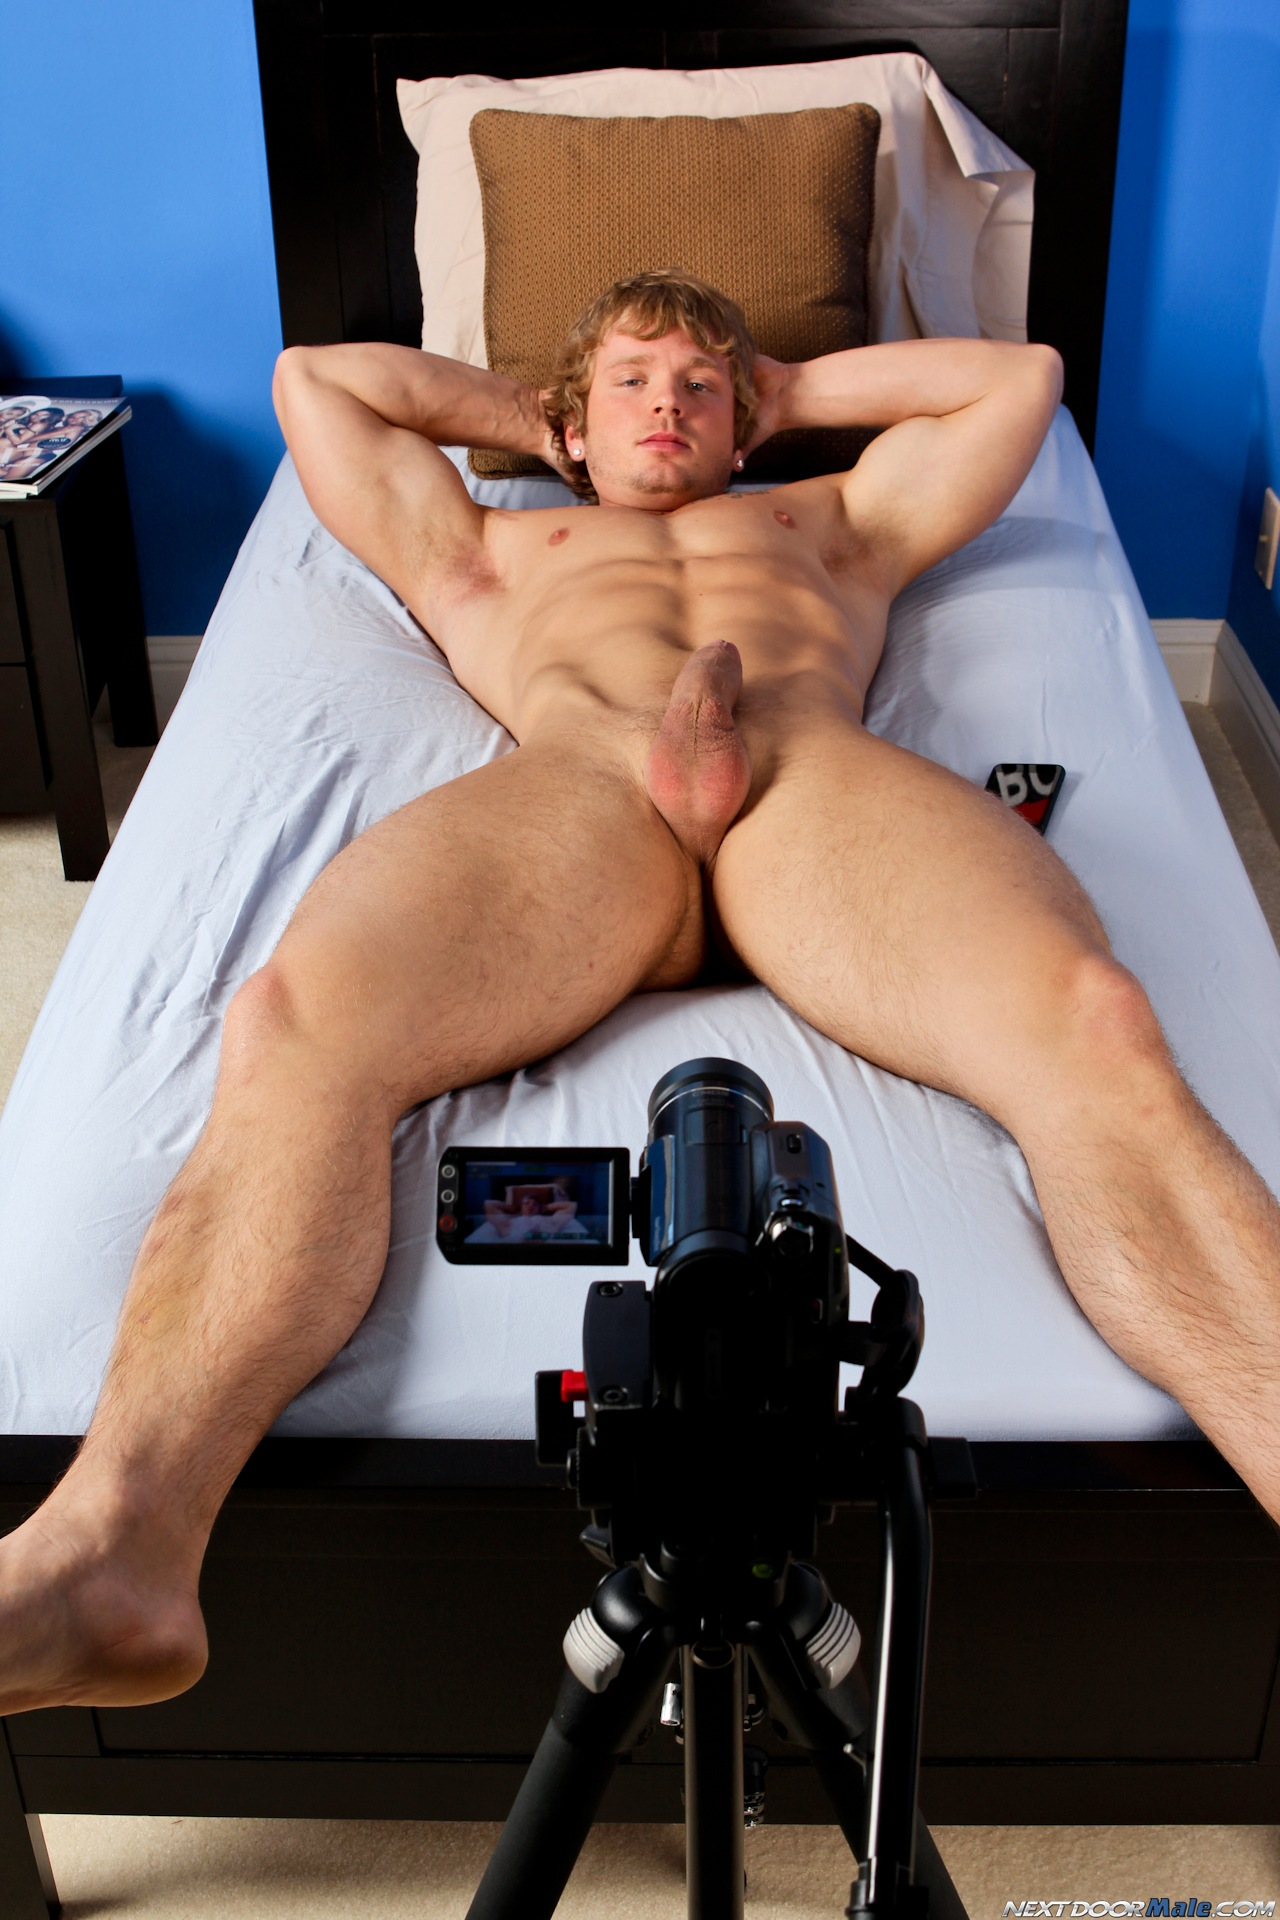 degradation gay anal sex